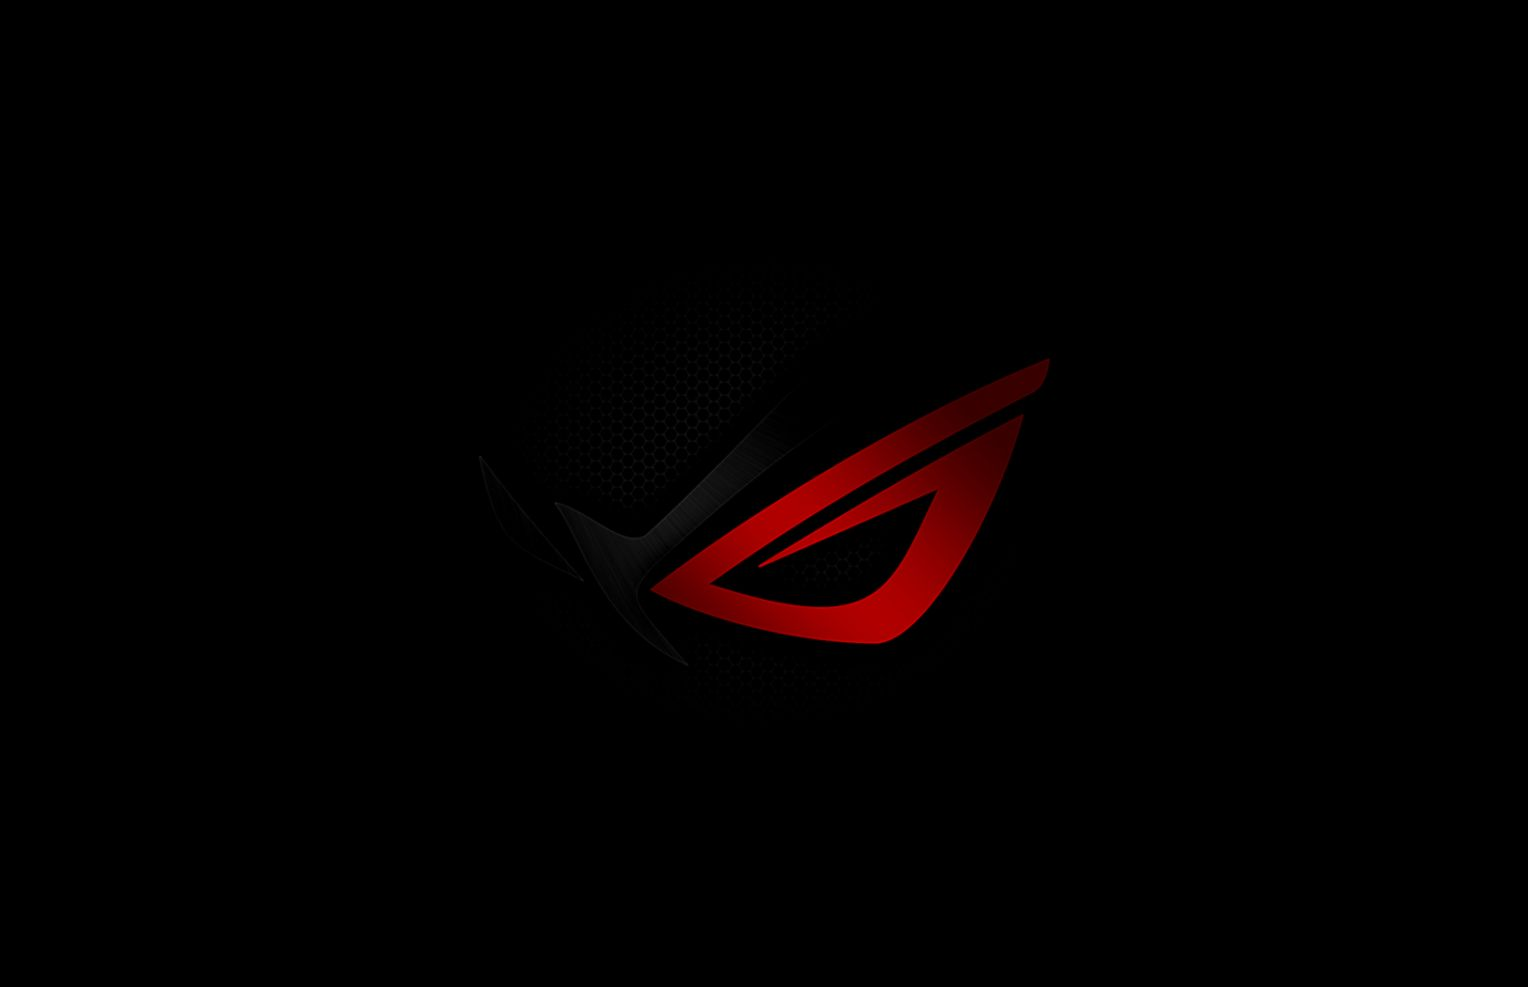 Unduh 1000 Wallpaper Hp Asus Rog HD